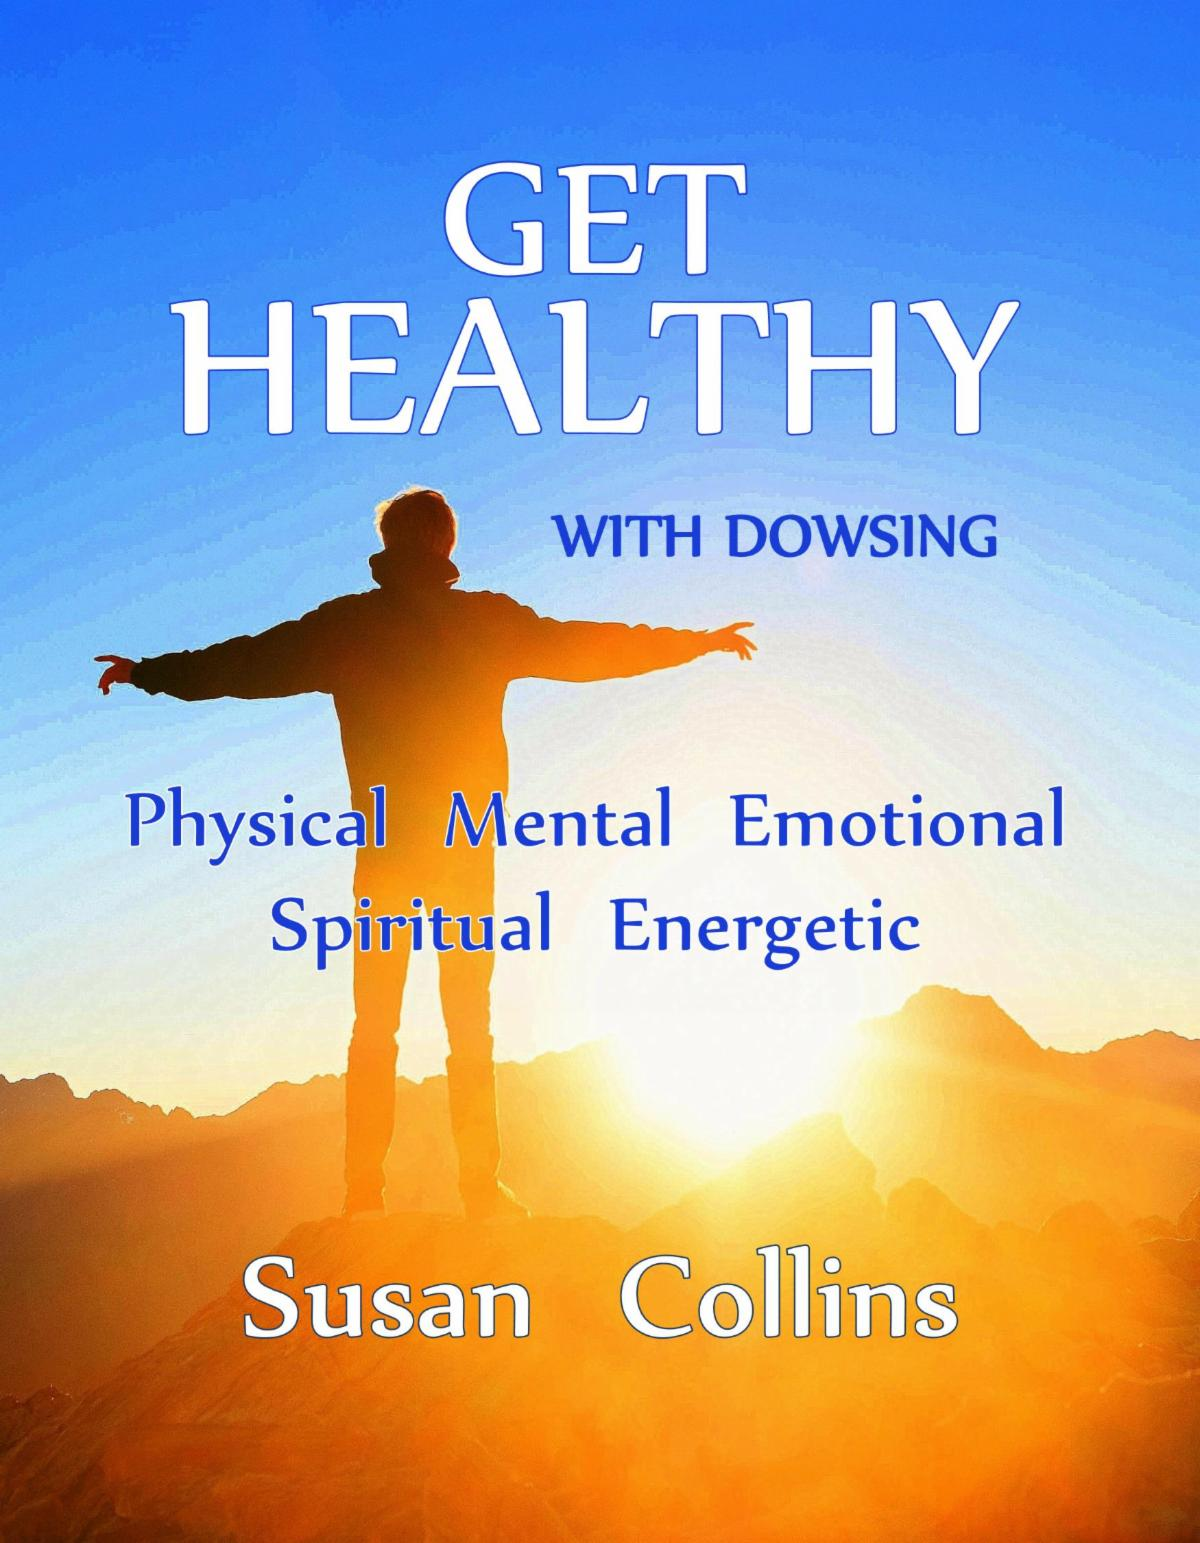 Get Healthy by Susan Collins